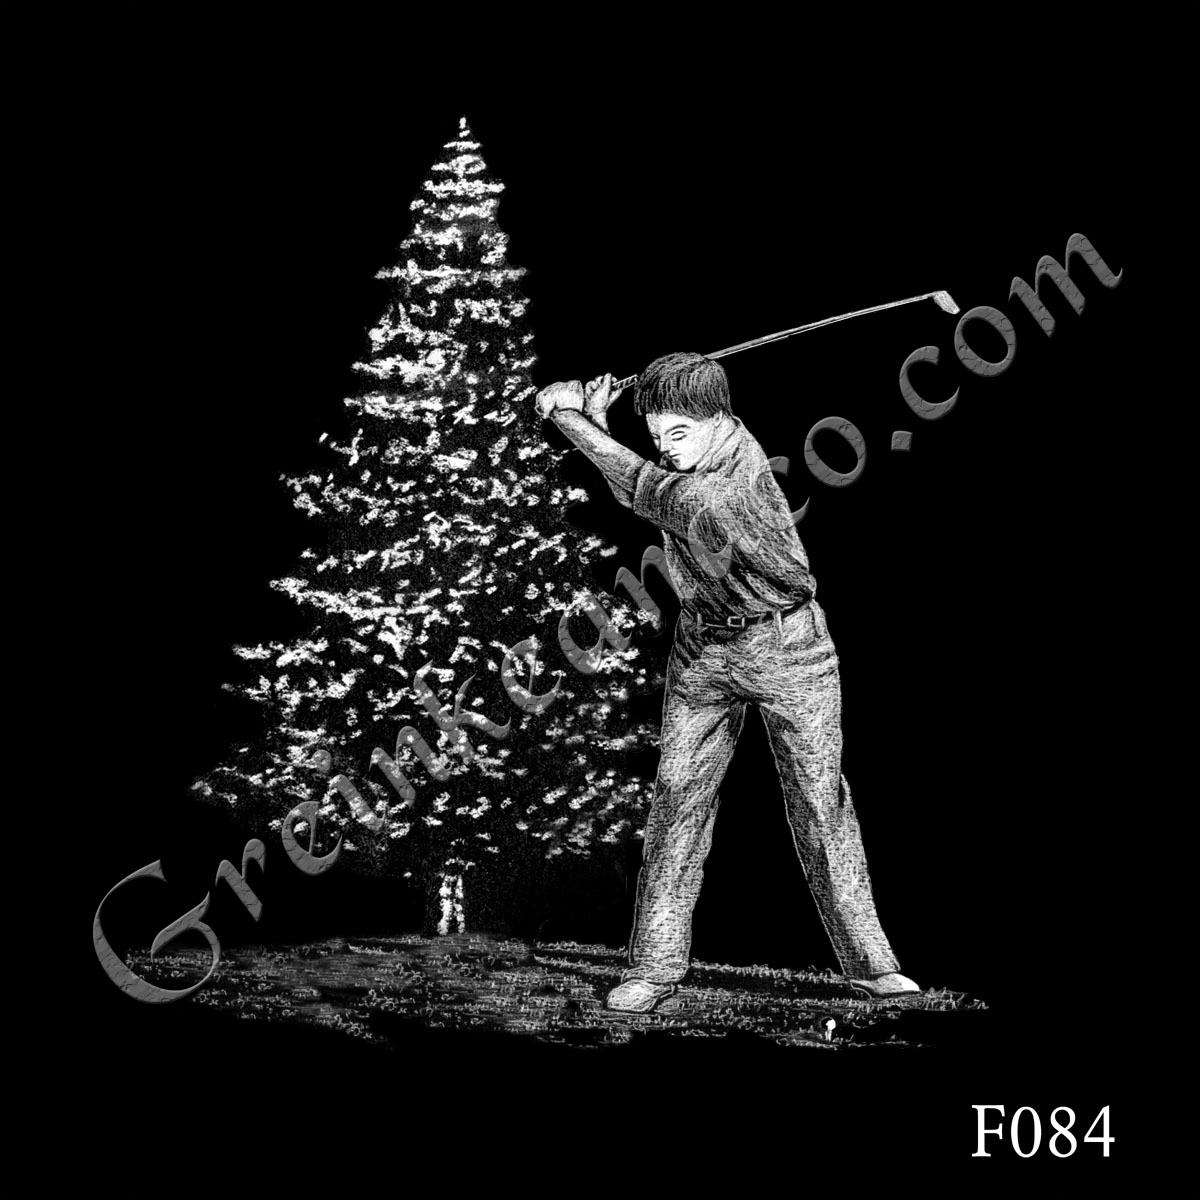 F084 - Golfer and Pine Tree